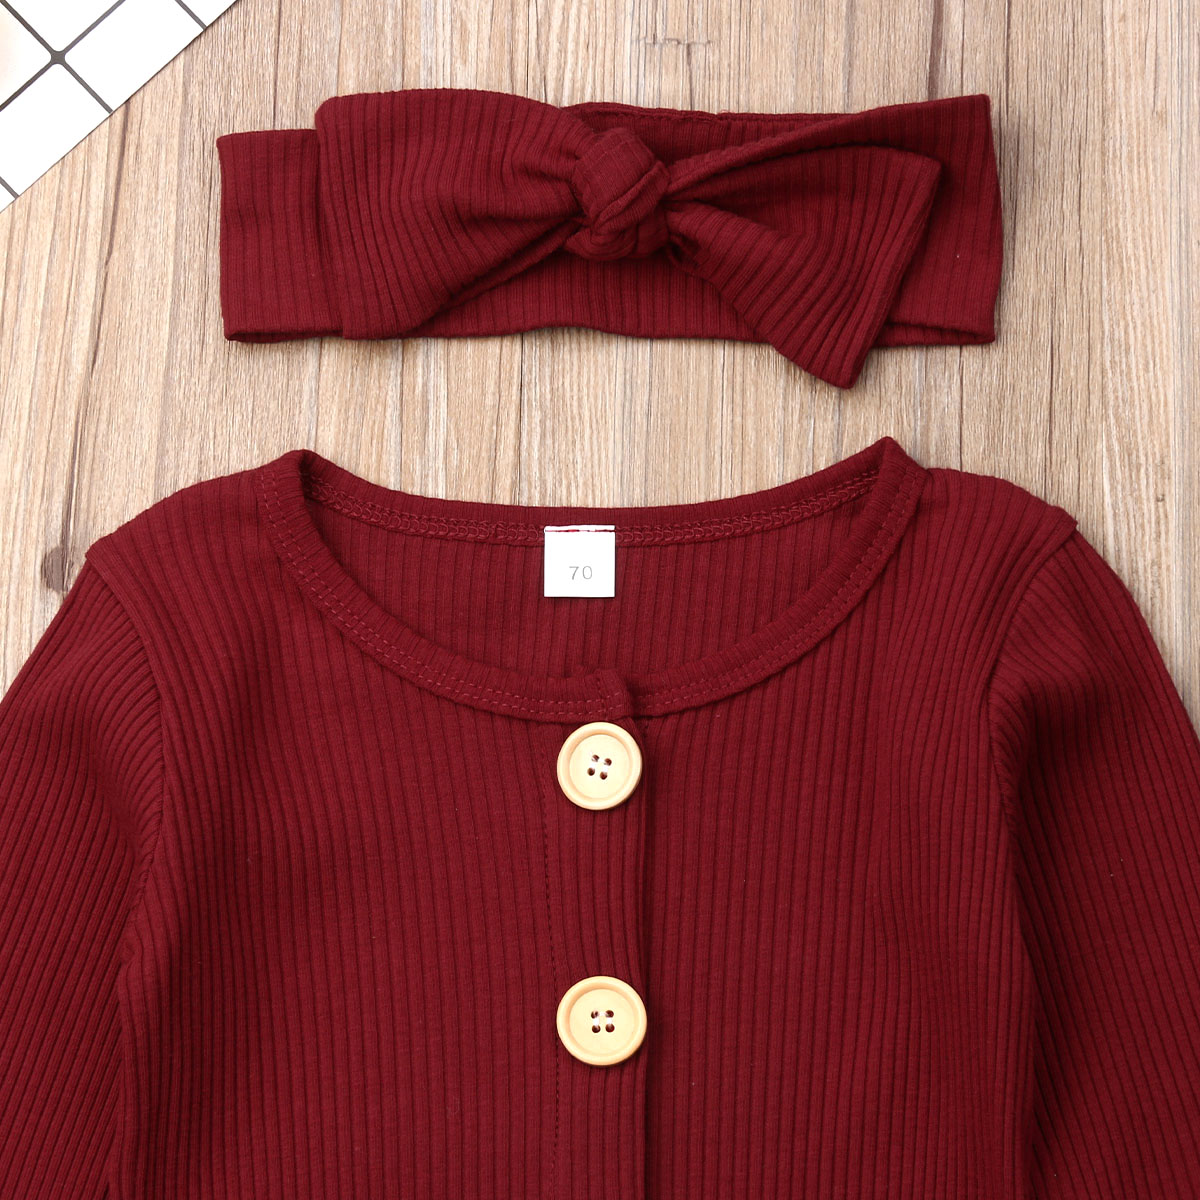 H2c3fdc044f514e75aee11df4f629b67eM Spring Fall Newborn Baby Girl Boy Clothes Long Sleeve Knitted Romper + Headband Jumpsuit 2PCS Outfit 0-24M